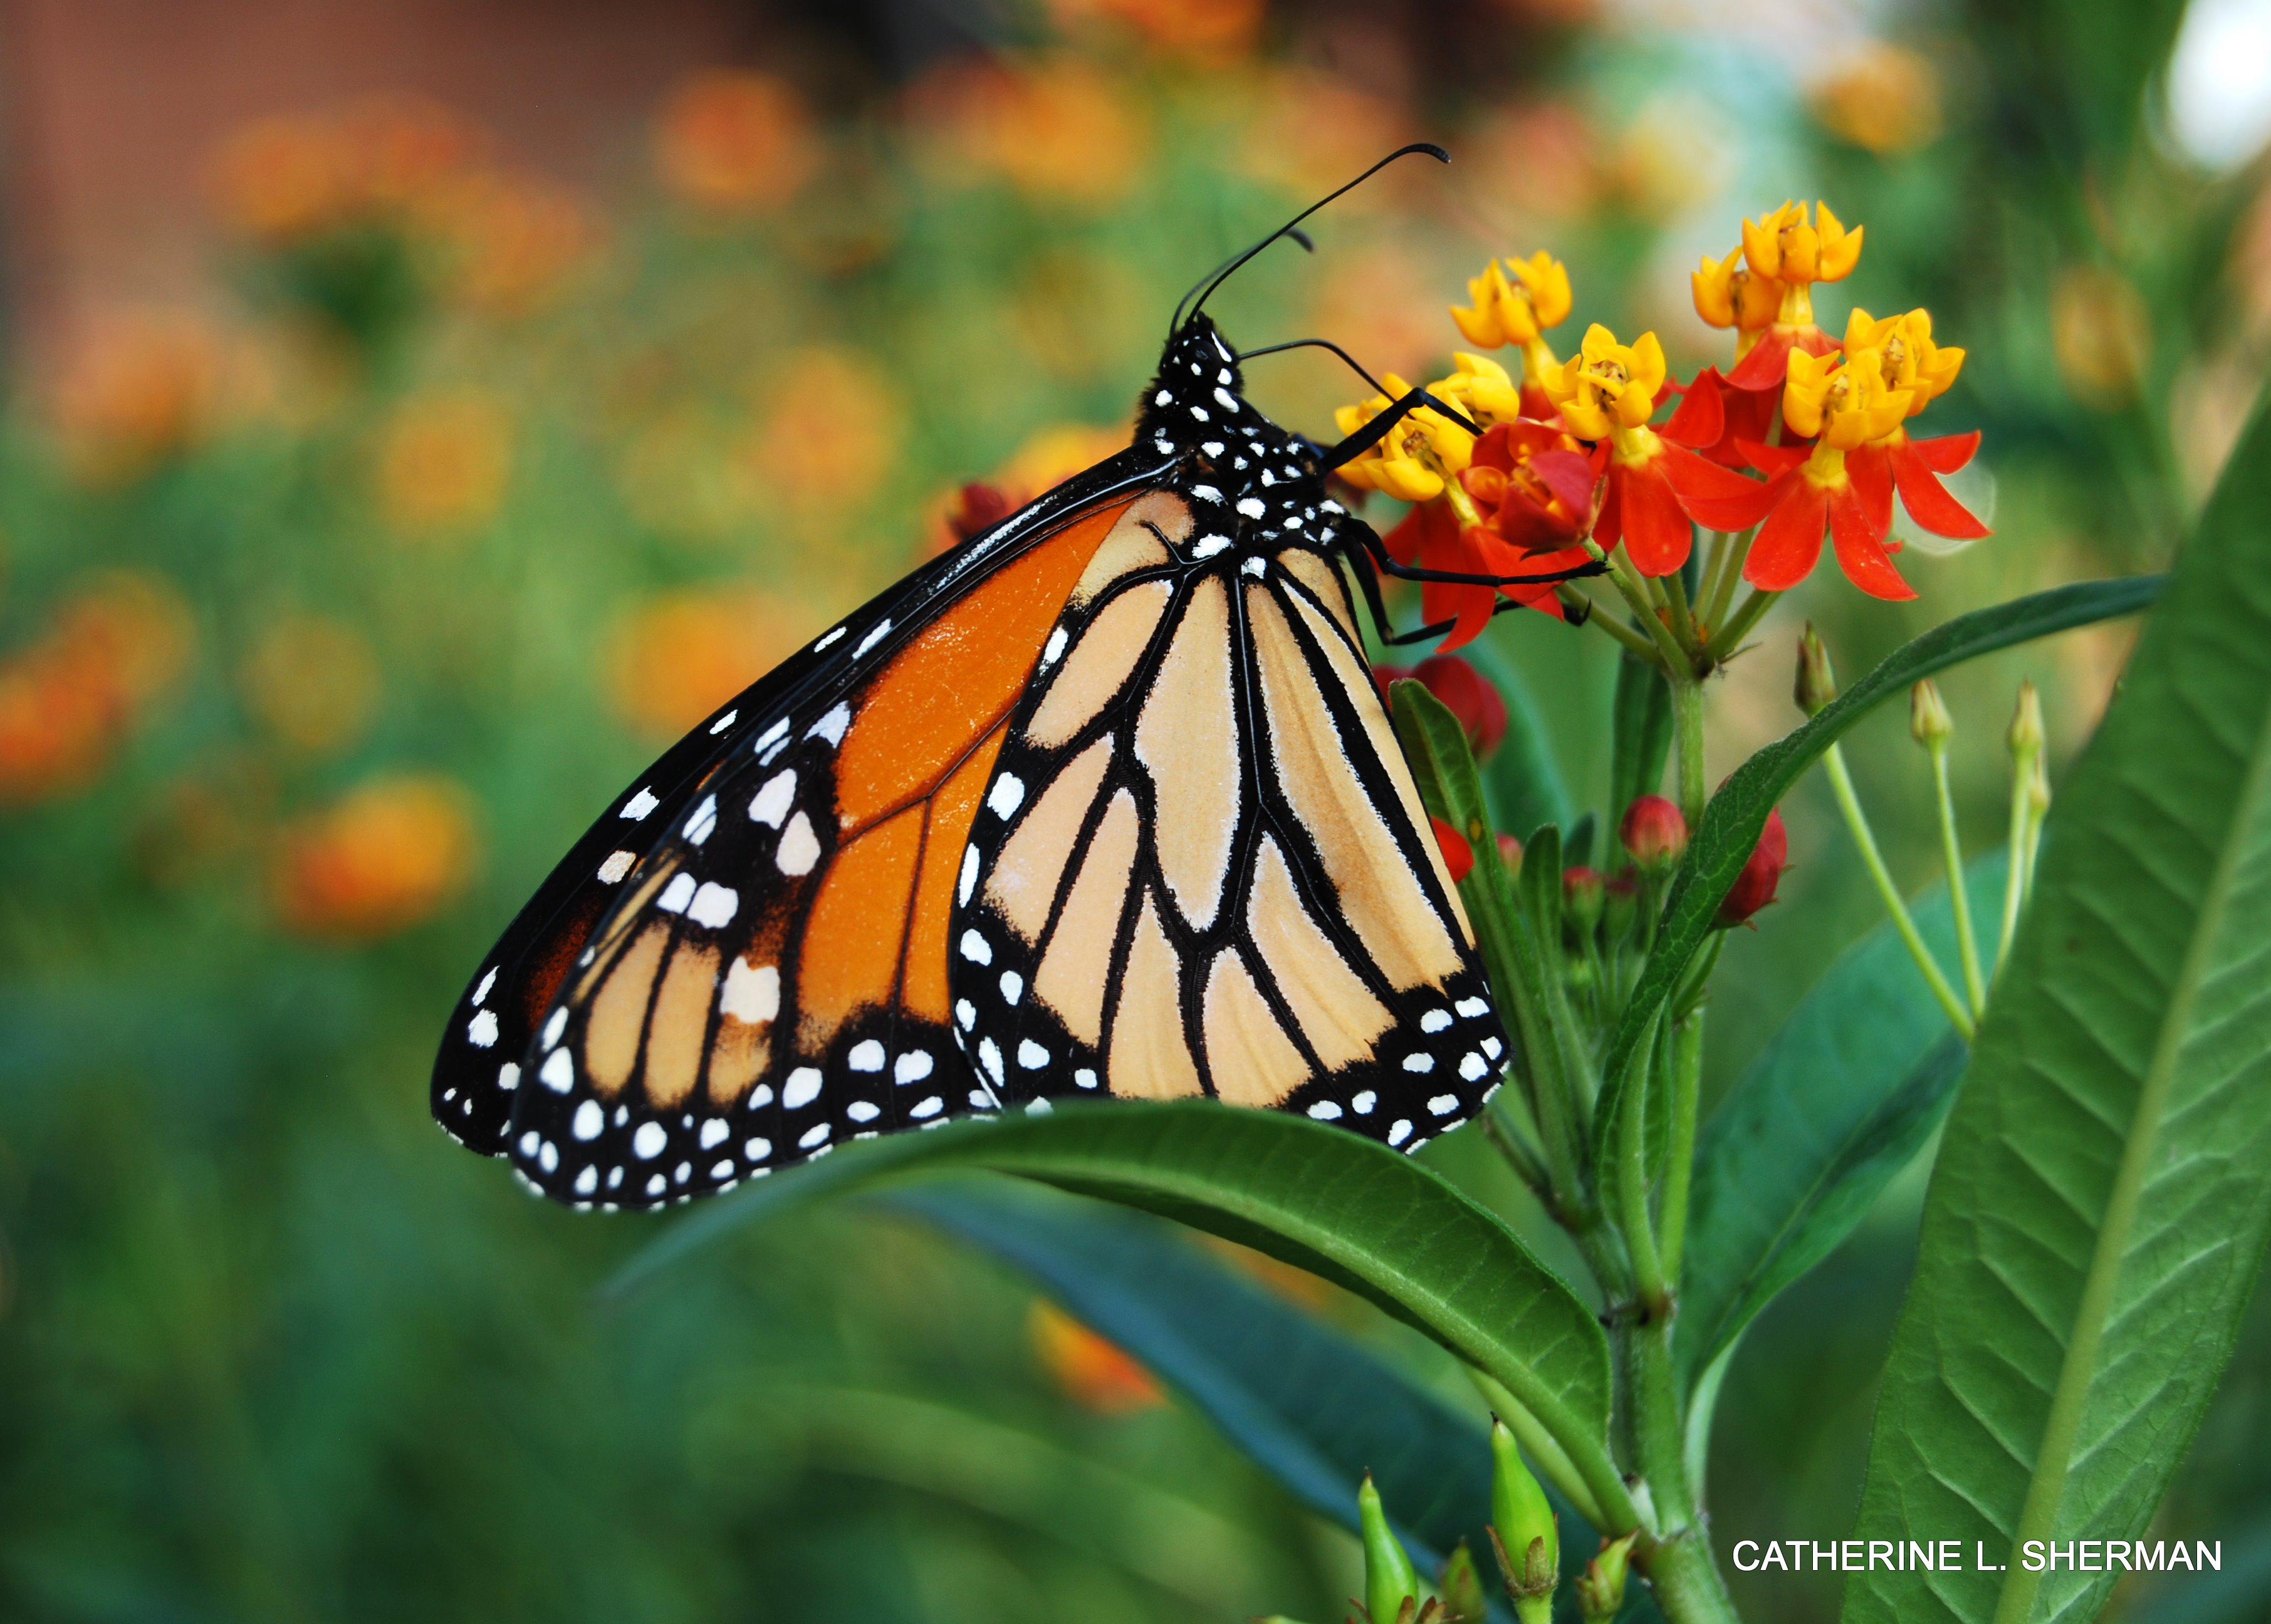 A Monarch butterfly finds nectar in the blossom of a scarlet milkweed, a tropical species.  I planted four kinds of milkweed, but the Monarchs by far preferred my scarlet milkweed.